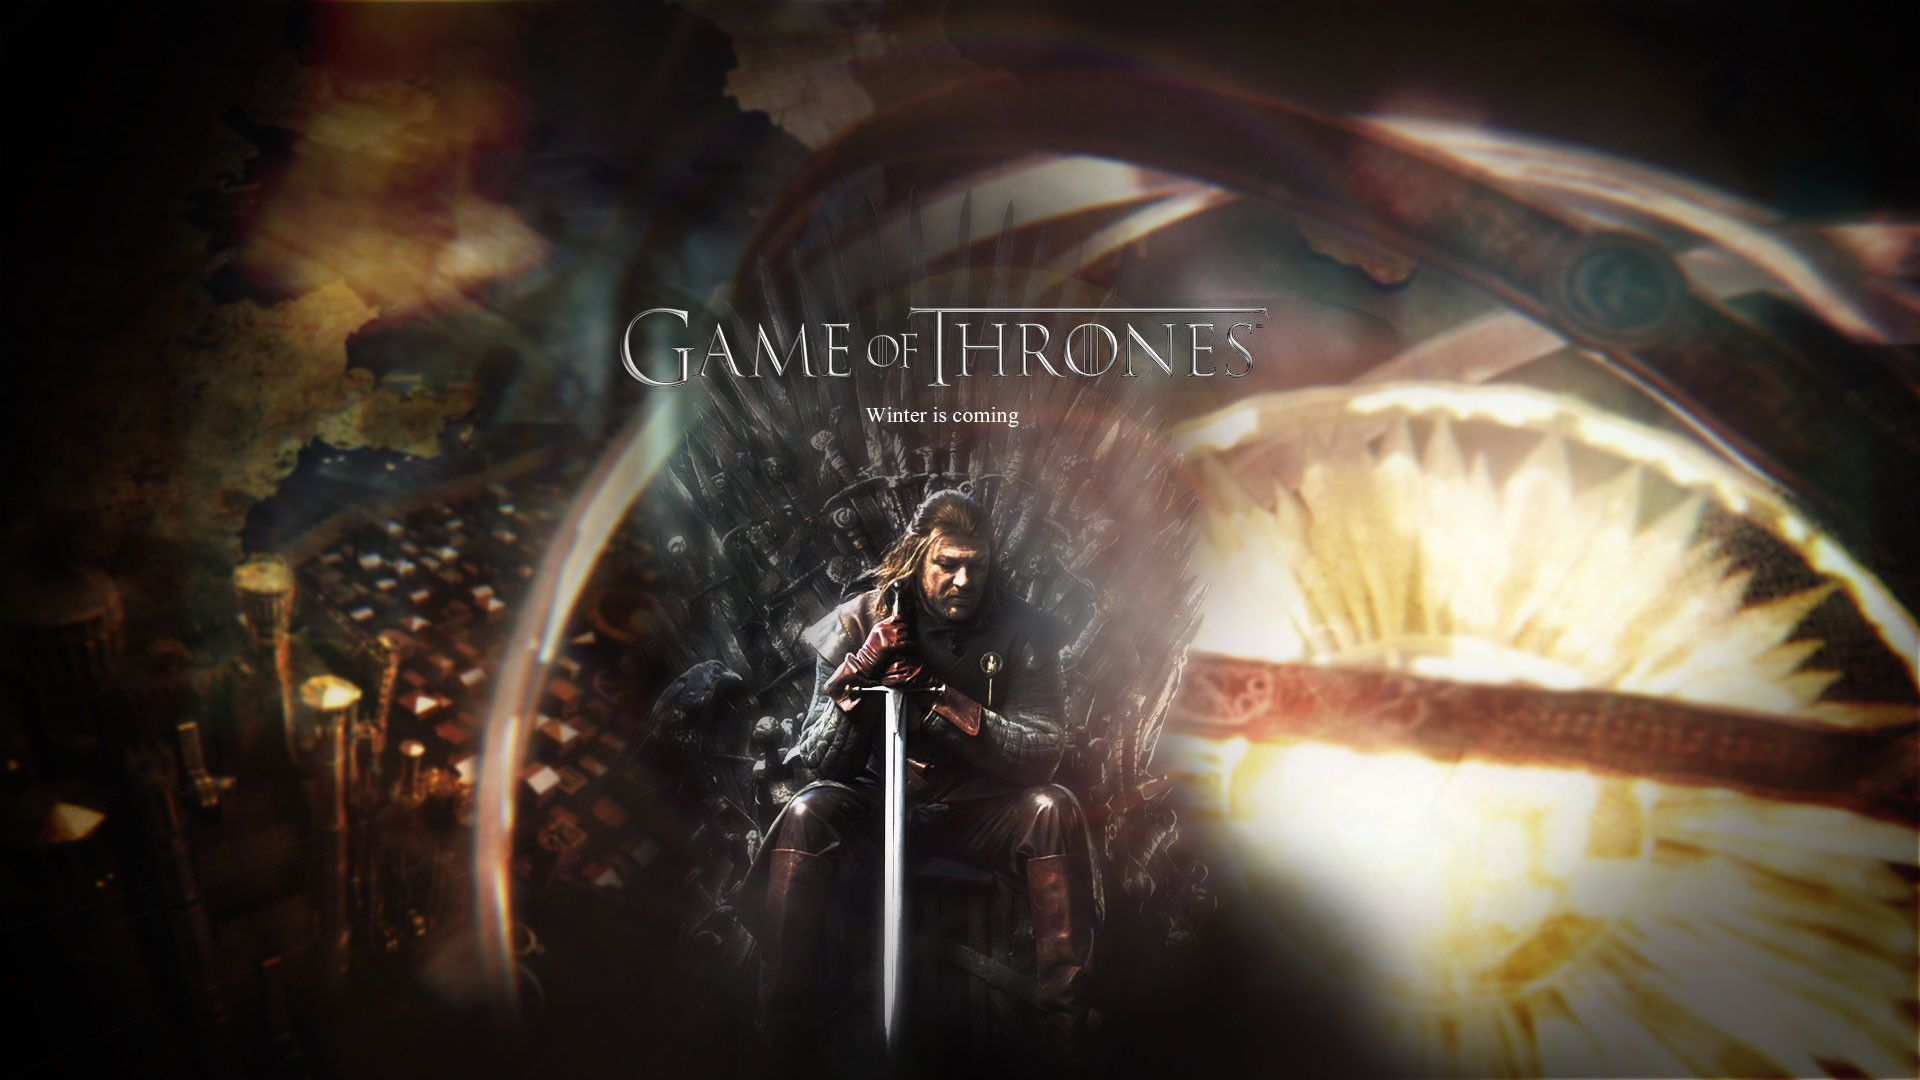 1920x1080 Game Of Thrones Widescreen Game Of Thrones Winter Trendy Games Game Of Thrones